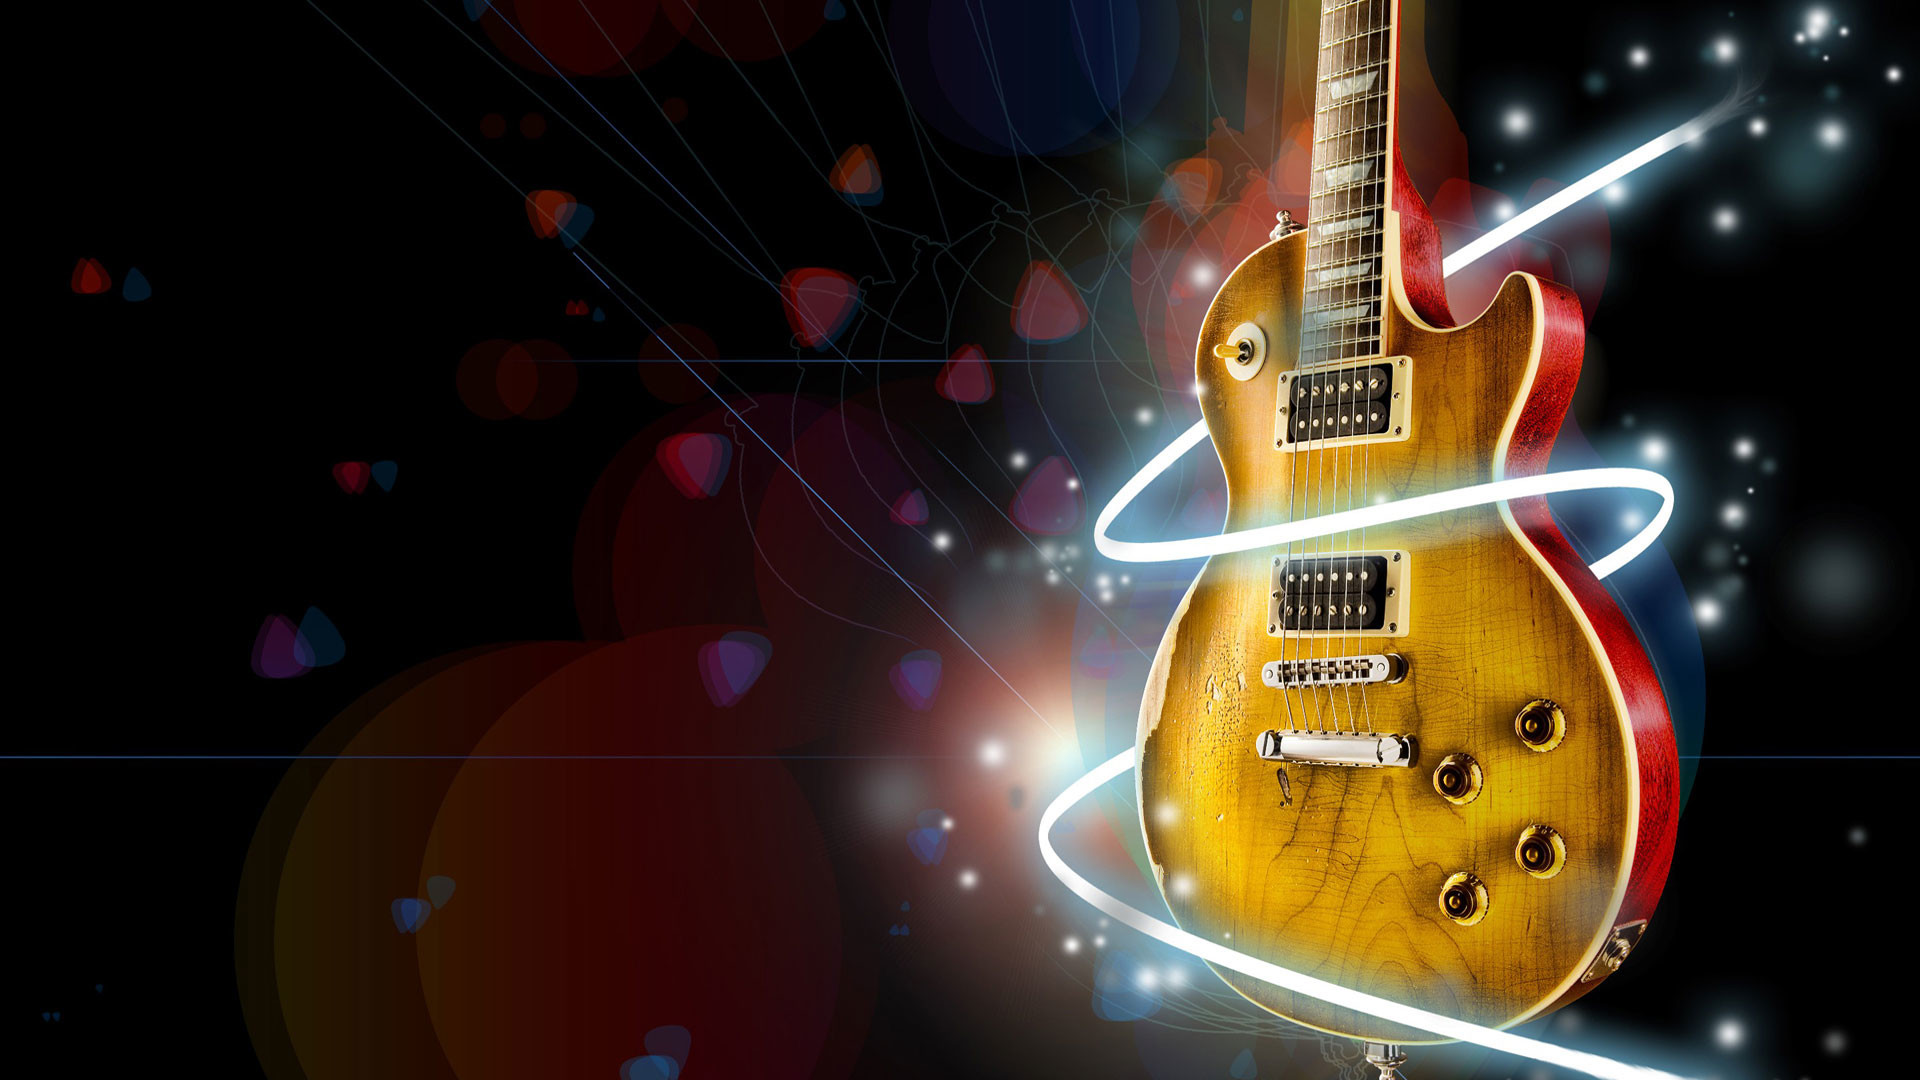 1920x1080 hd pics photos music animated gibson guitar hd desktop background wallpaper